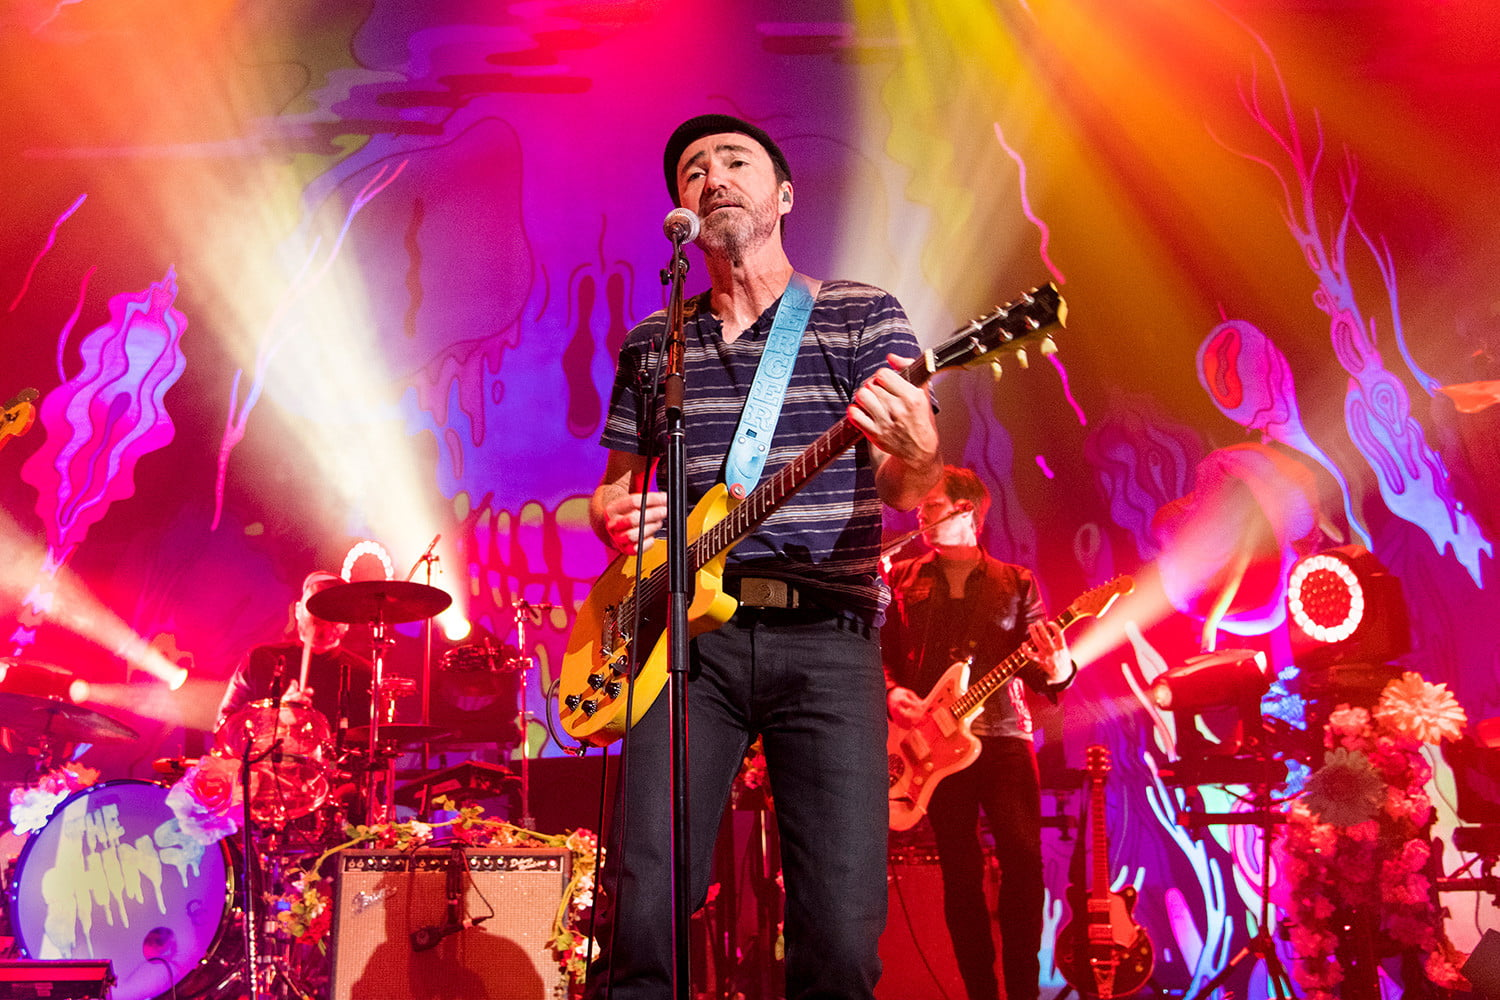 james mercer the shins trippy stage